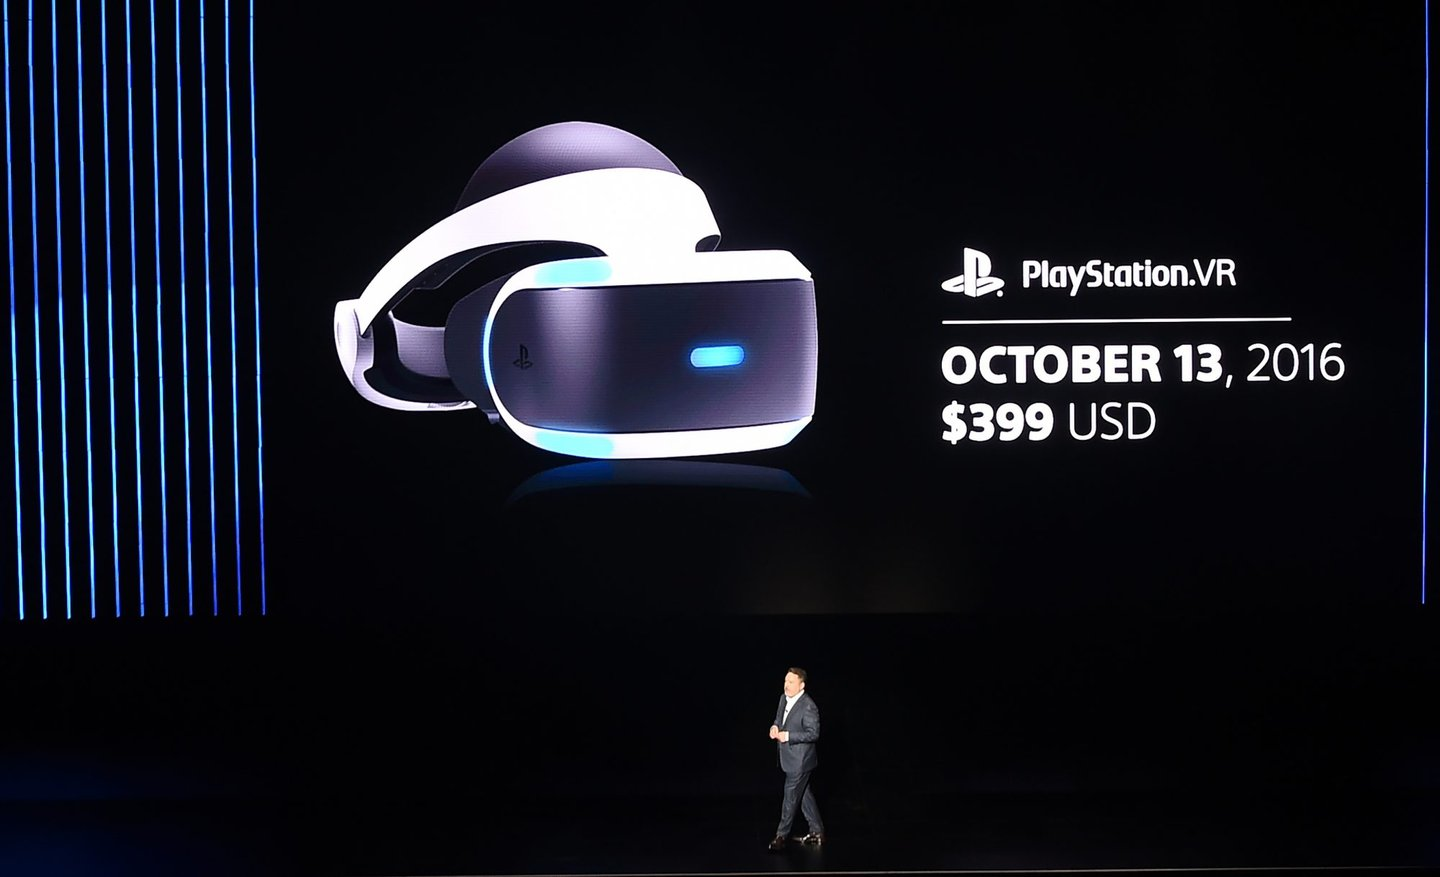 Shawn Layden, chairman of Sony Interactive Entertainment (SIE) Worldwide Studios, announces that Sonys PlayStation VR headset will be for sale on October 13, 2016 for USD $399, at the Sony PlayStation E3 press conference is underway at the Shrine Auditorium in Los Angeles, California, June 13, 2016. / AFP / ROBYN BECK (Photo credit should read ROBYN BECK/AFP/Getty Images)